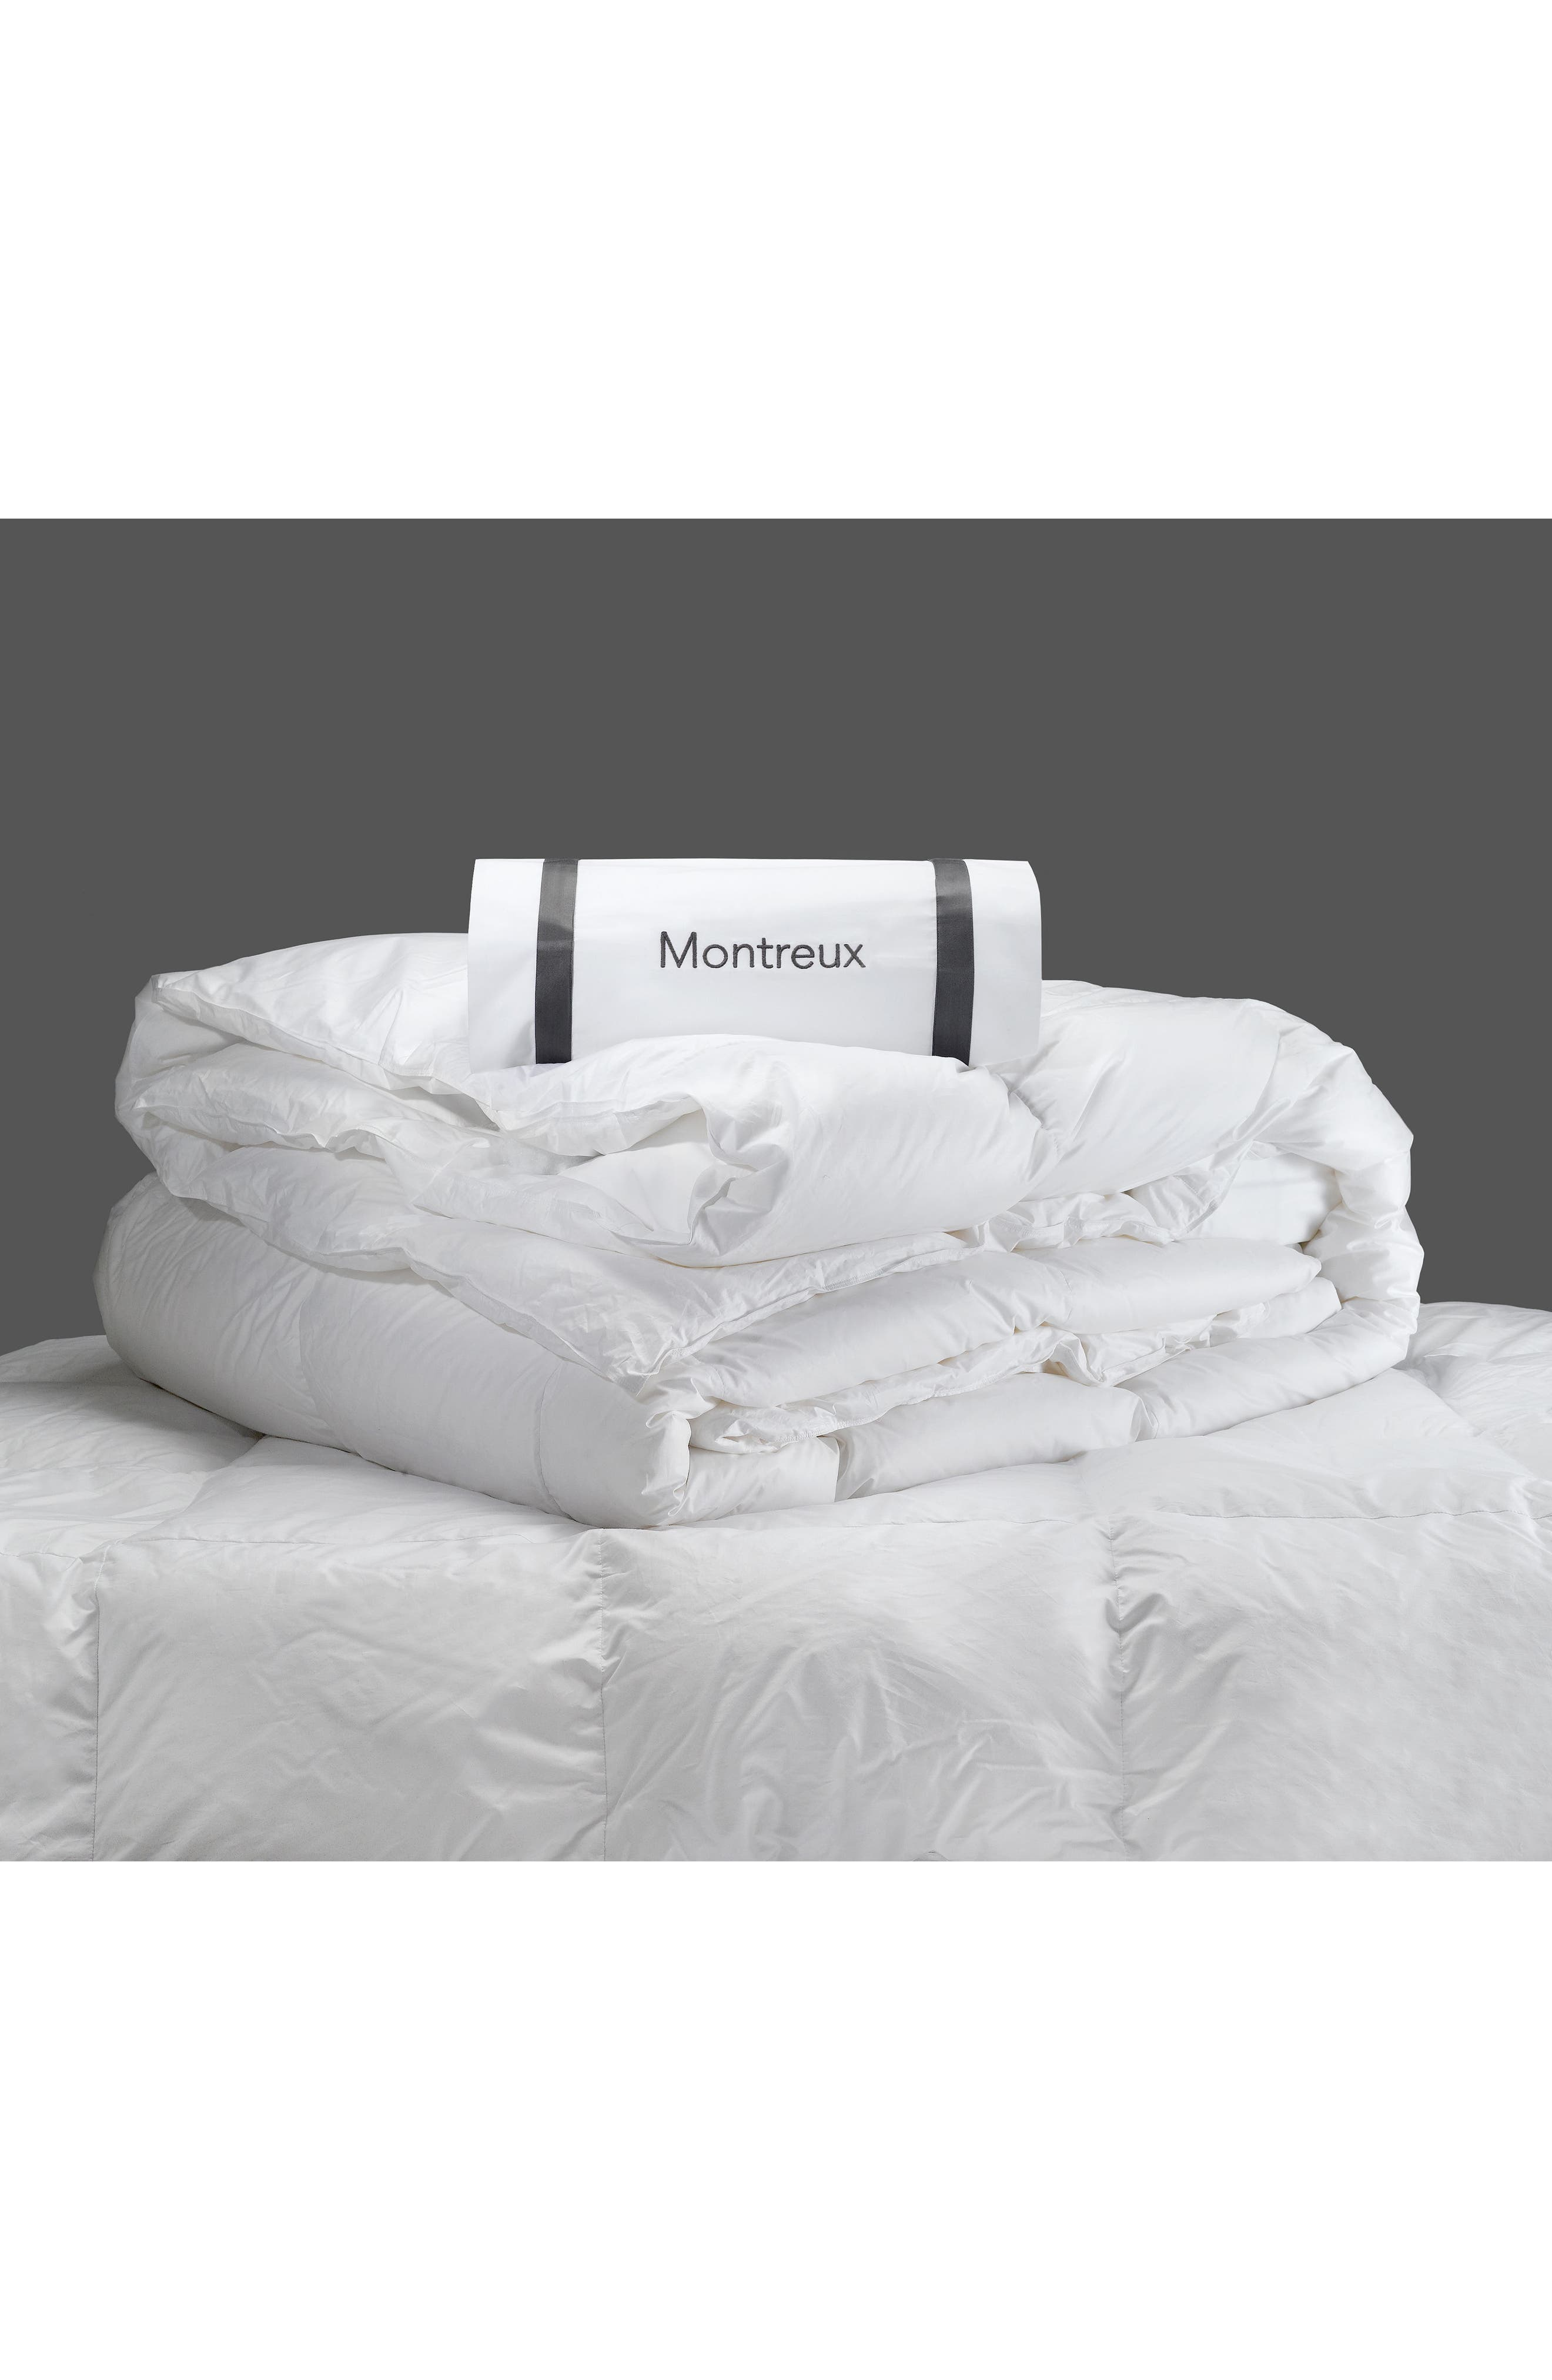 Montreux 600 Fill Power Summer Down 280 Thread Count Comforter,                             Alternate thumbnail 2, color,                             White